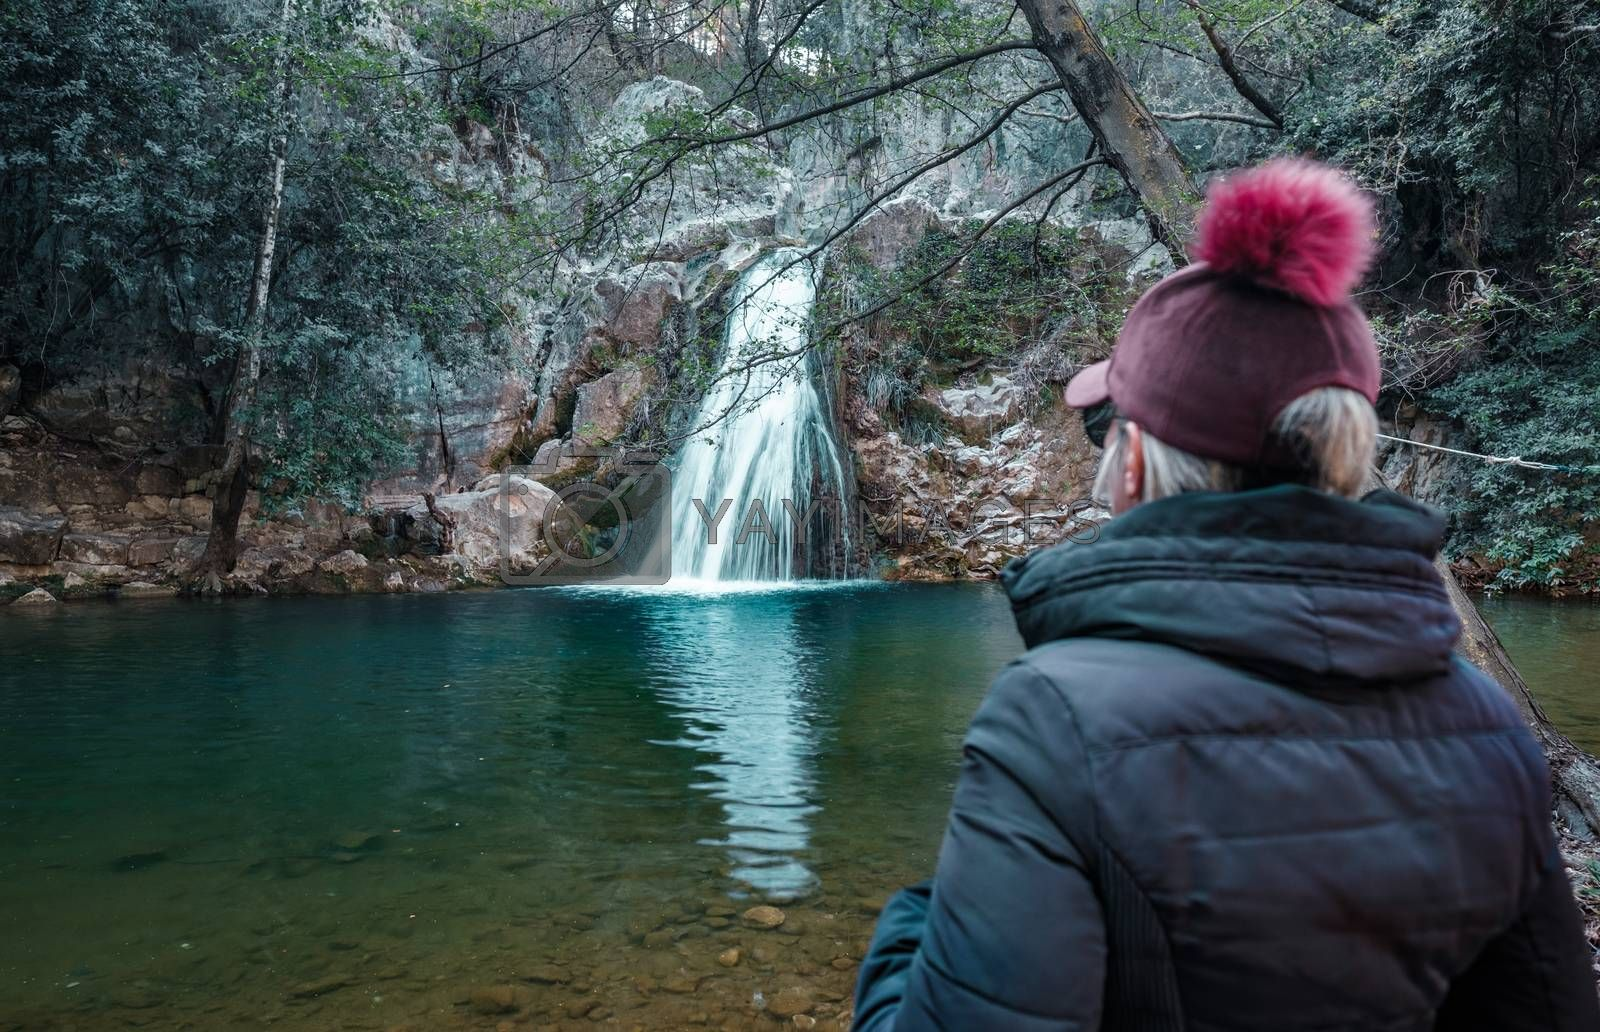 Adult woman standing in front of waterfall and enjoying the view at Kocacay Deresi, Antalya, Turkey.